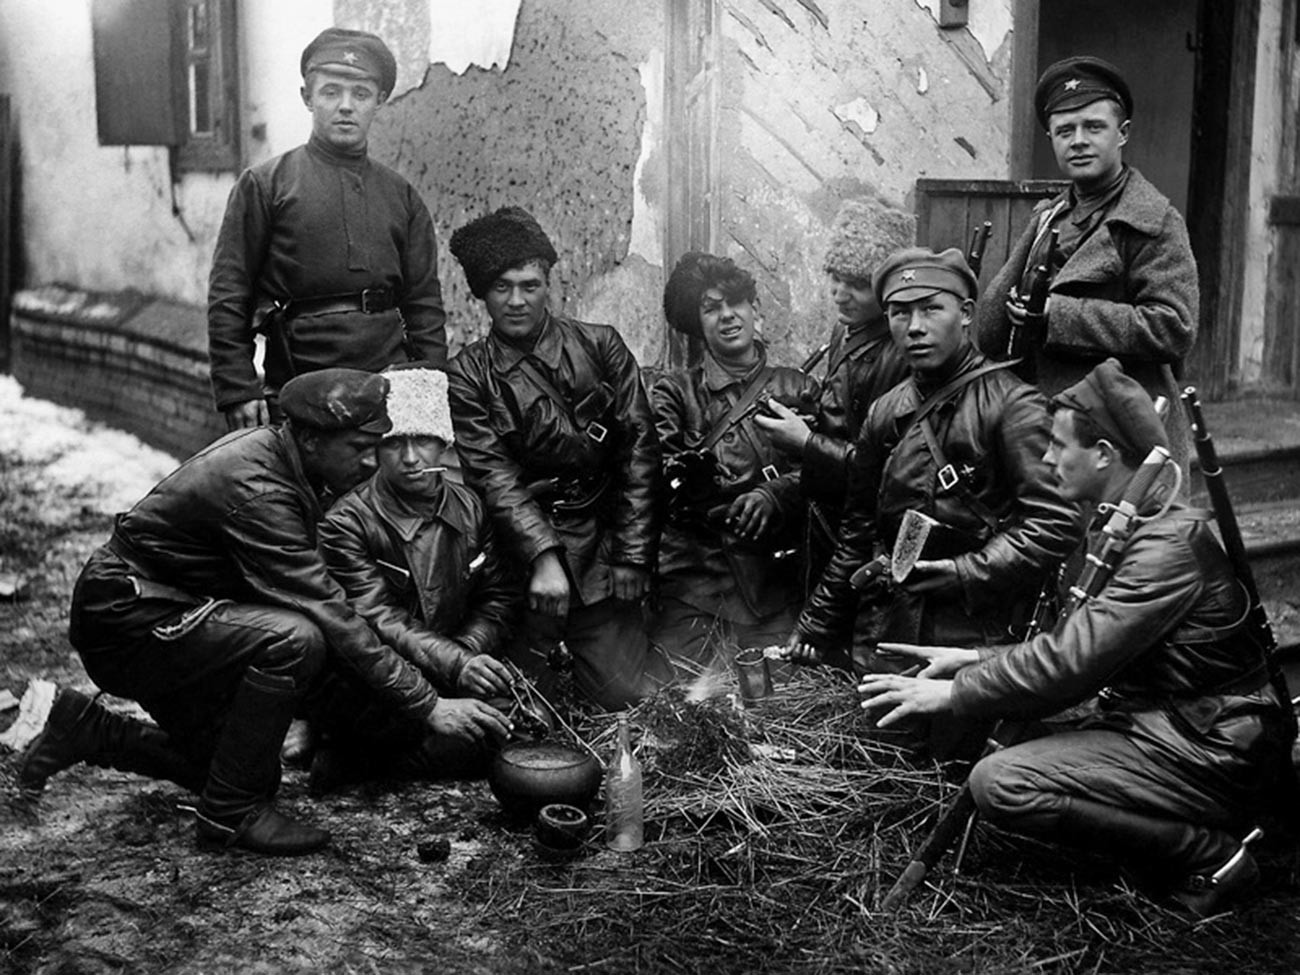 The Red Army soldiers.